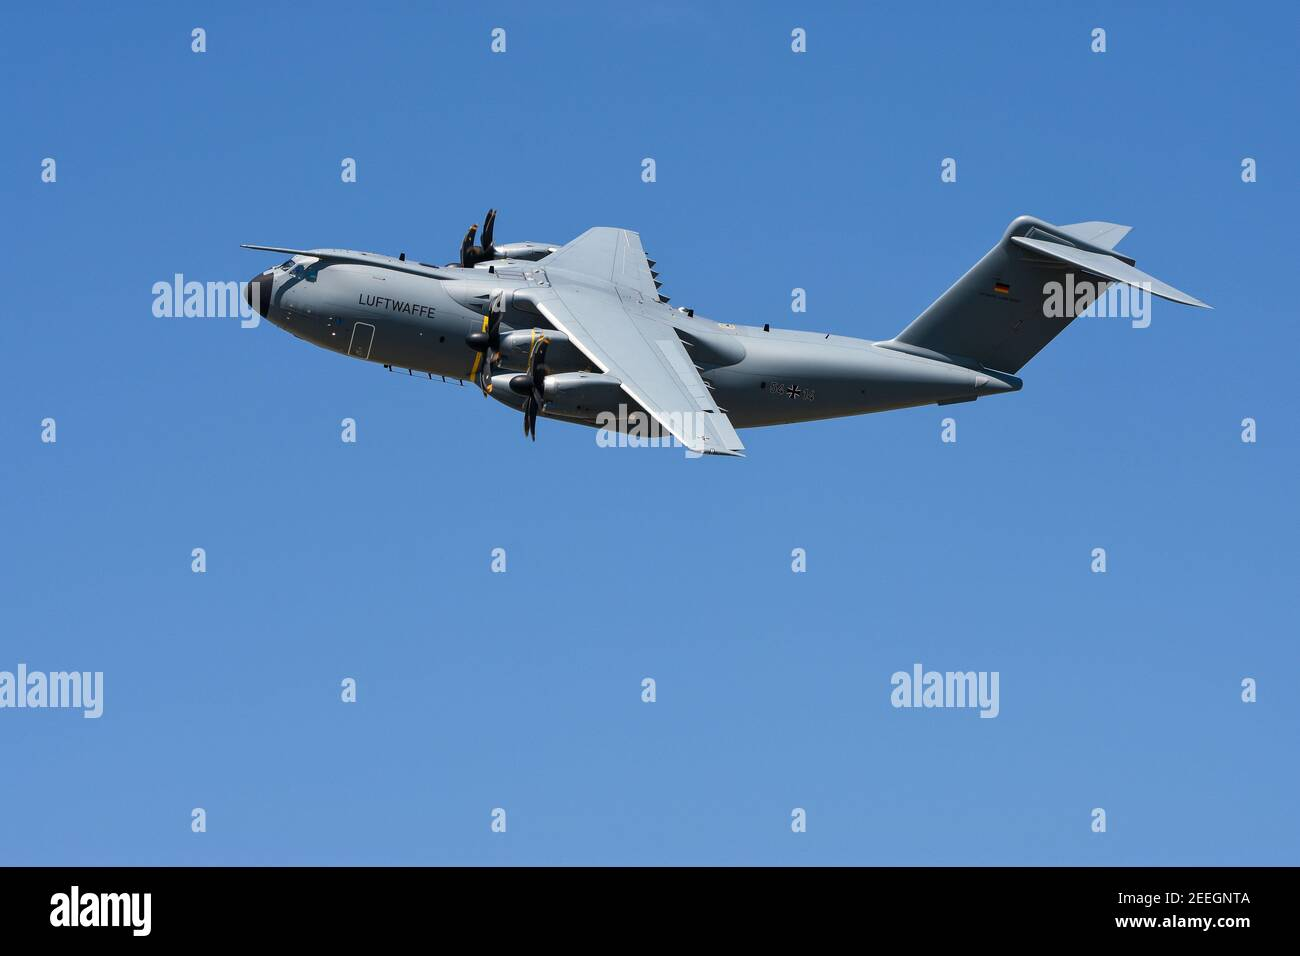 """07.06.2018, Wunstdorf, Lower Saxony, an Airbus A400M """"Atlas"""" in flight, taken on spotterday on Air Transport Wing 62. The Airbus A400M has been replacing transport aircraft from seven NATO countries since 2013. In the German Air Force, the A400M is to replace the old Transall C-160 from the 1960s. With a higher payload, range and speed, the A400M should have the same capabilities and also be able to be used as a tanker aircraft. The first A400M was delivered to Germany at the end of 2014, the last of 53 pieces is to take place in 2026.   usage worldwide Stock Photo"""